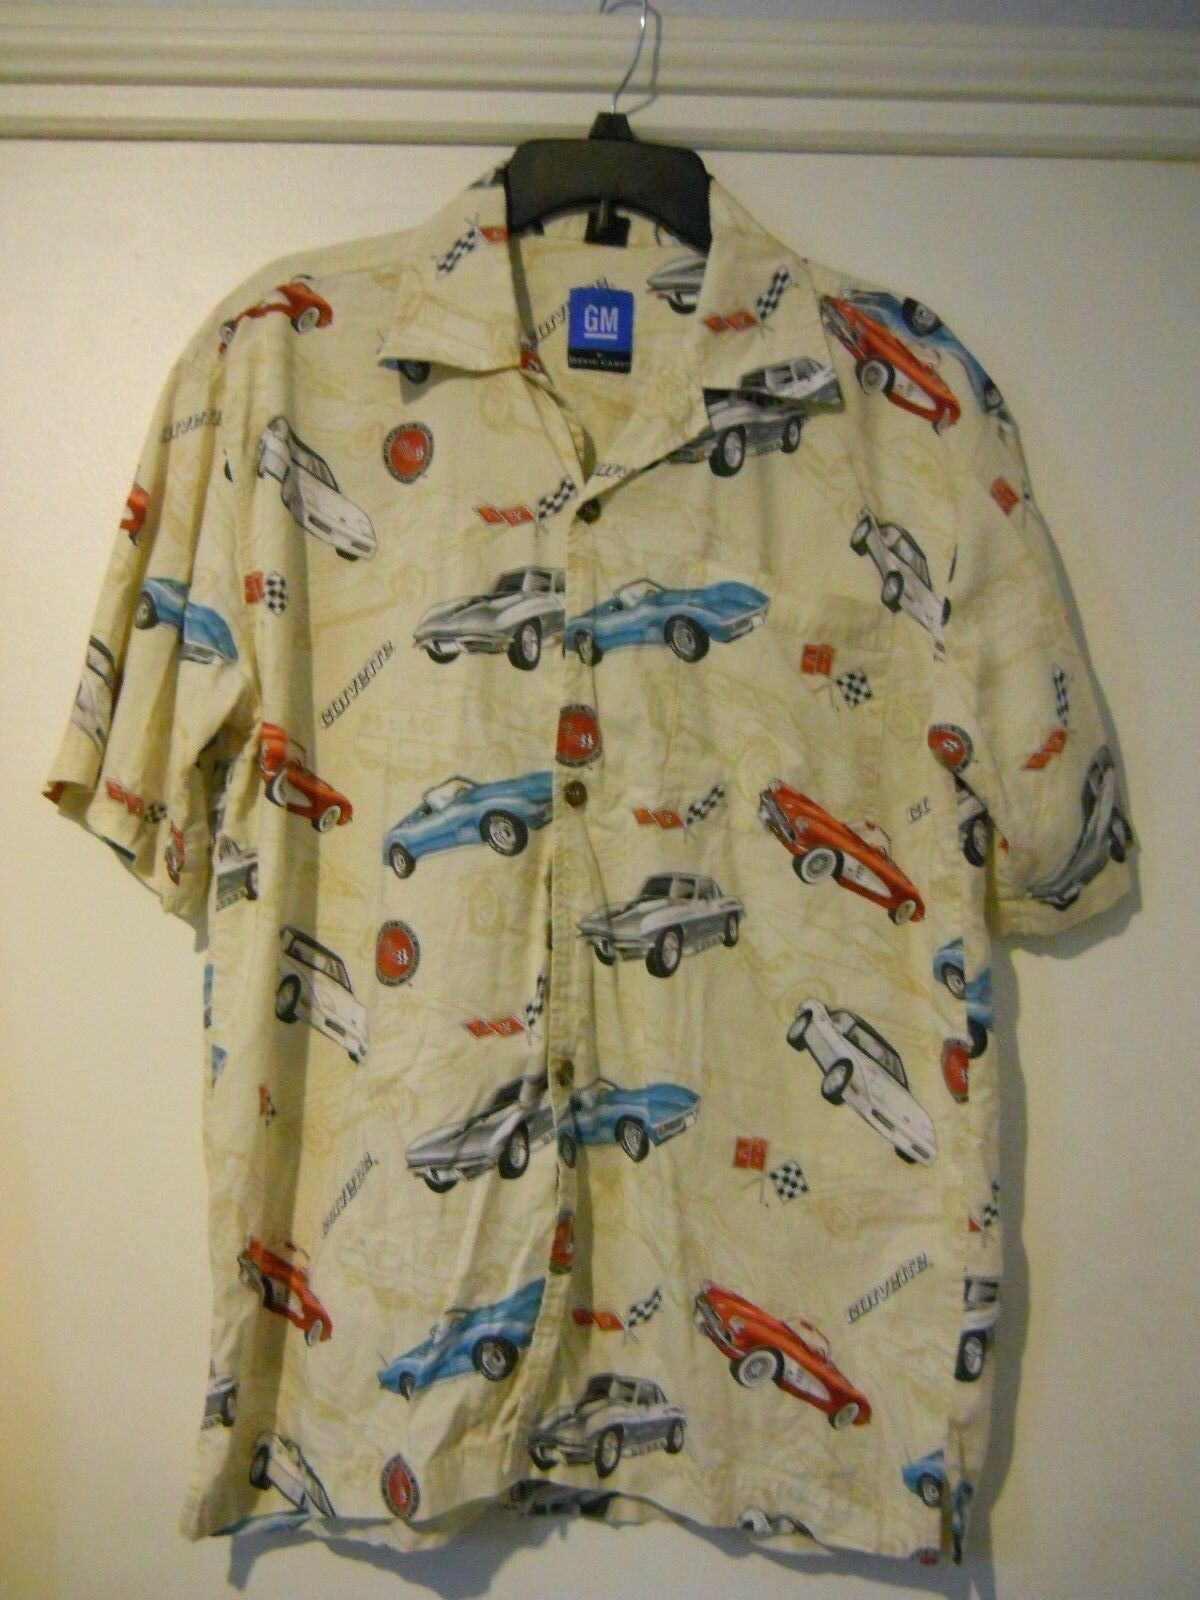 Uomo's B-36 Airplane Shirt-Convair B-36 Uomo's Peacemaker-Cold War-Aviation Shirt-Ivory 035e6a